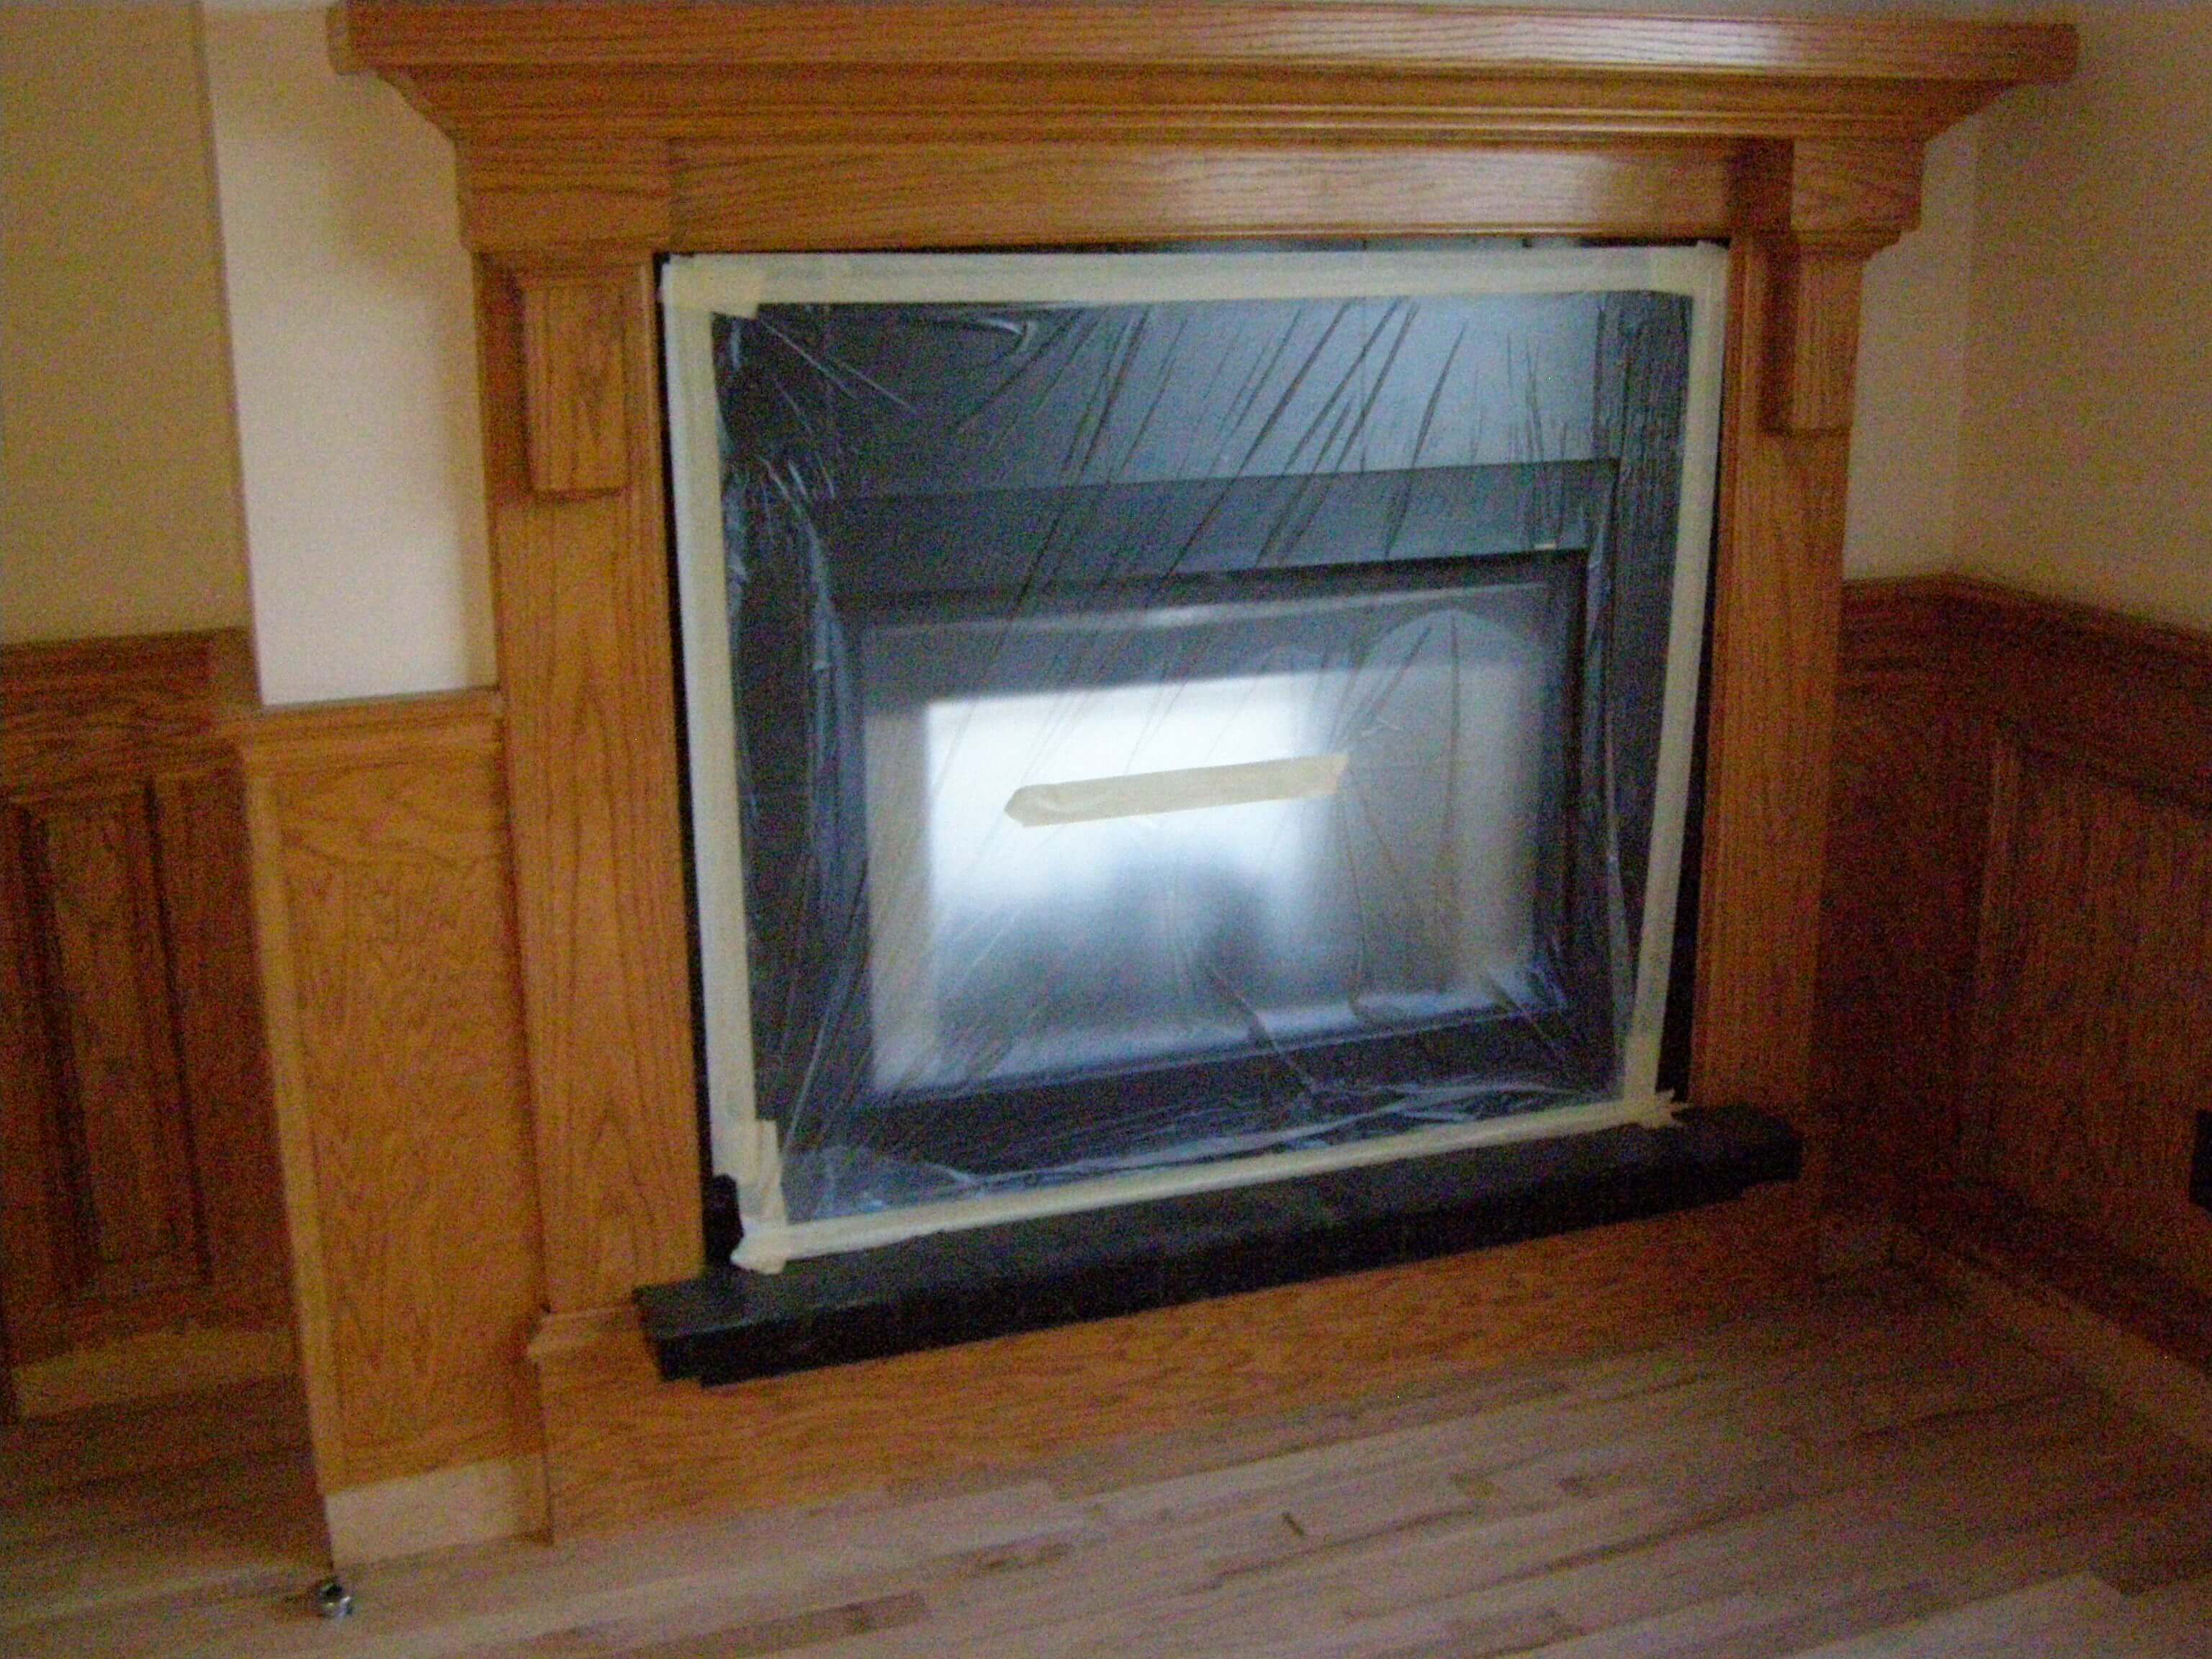 Bungalow Fireplace Mantel Custom Fireplace Mantel Woodwork Starwood Renovation